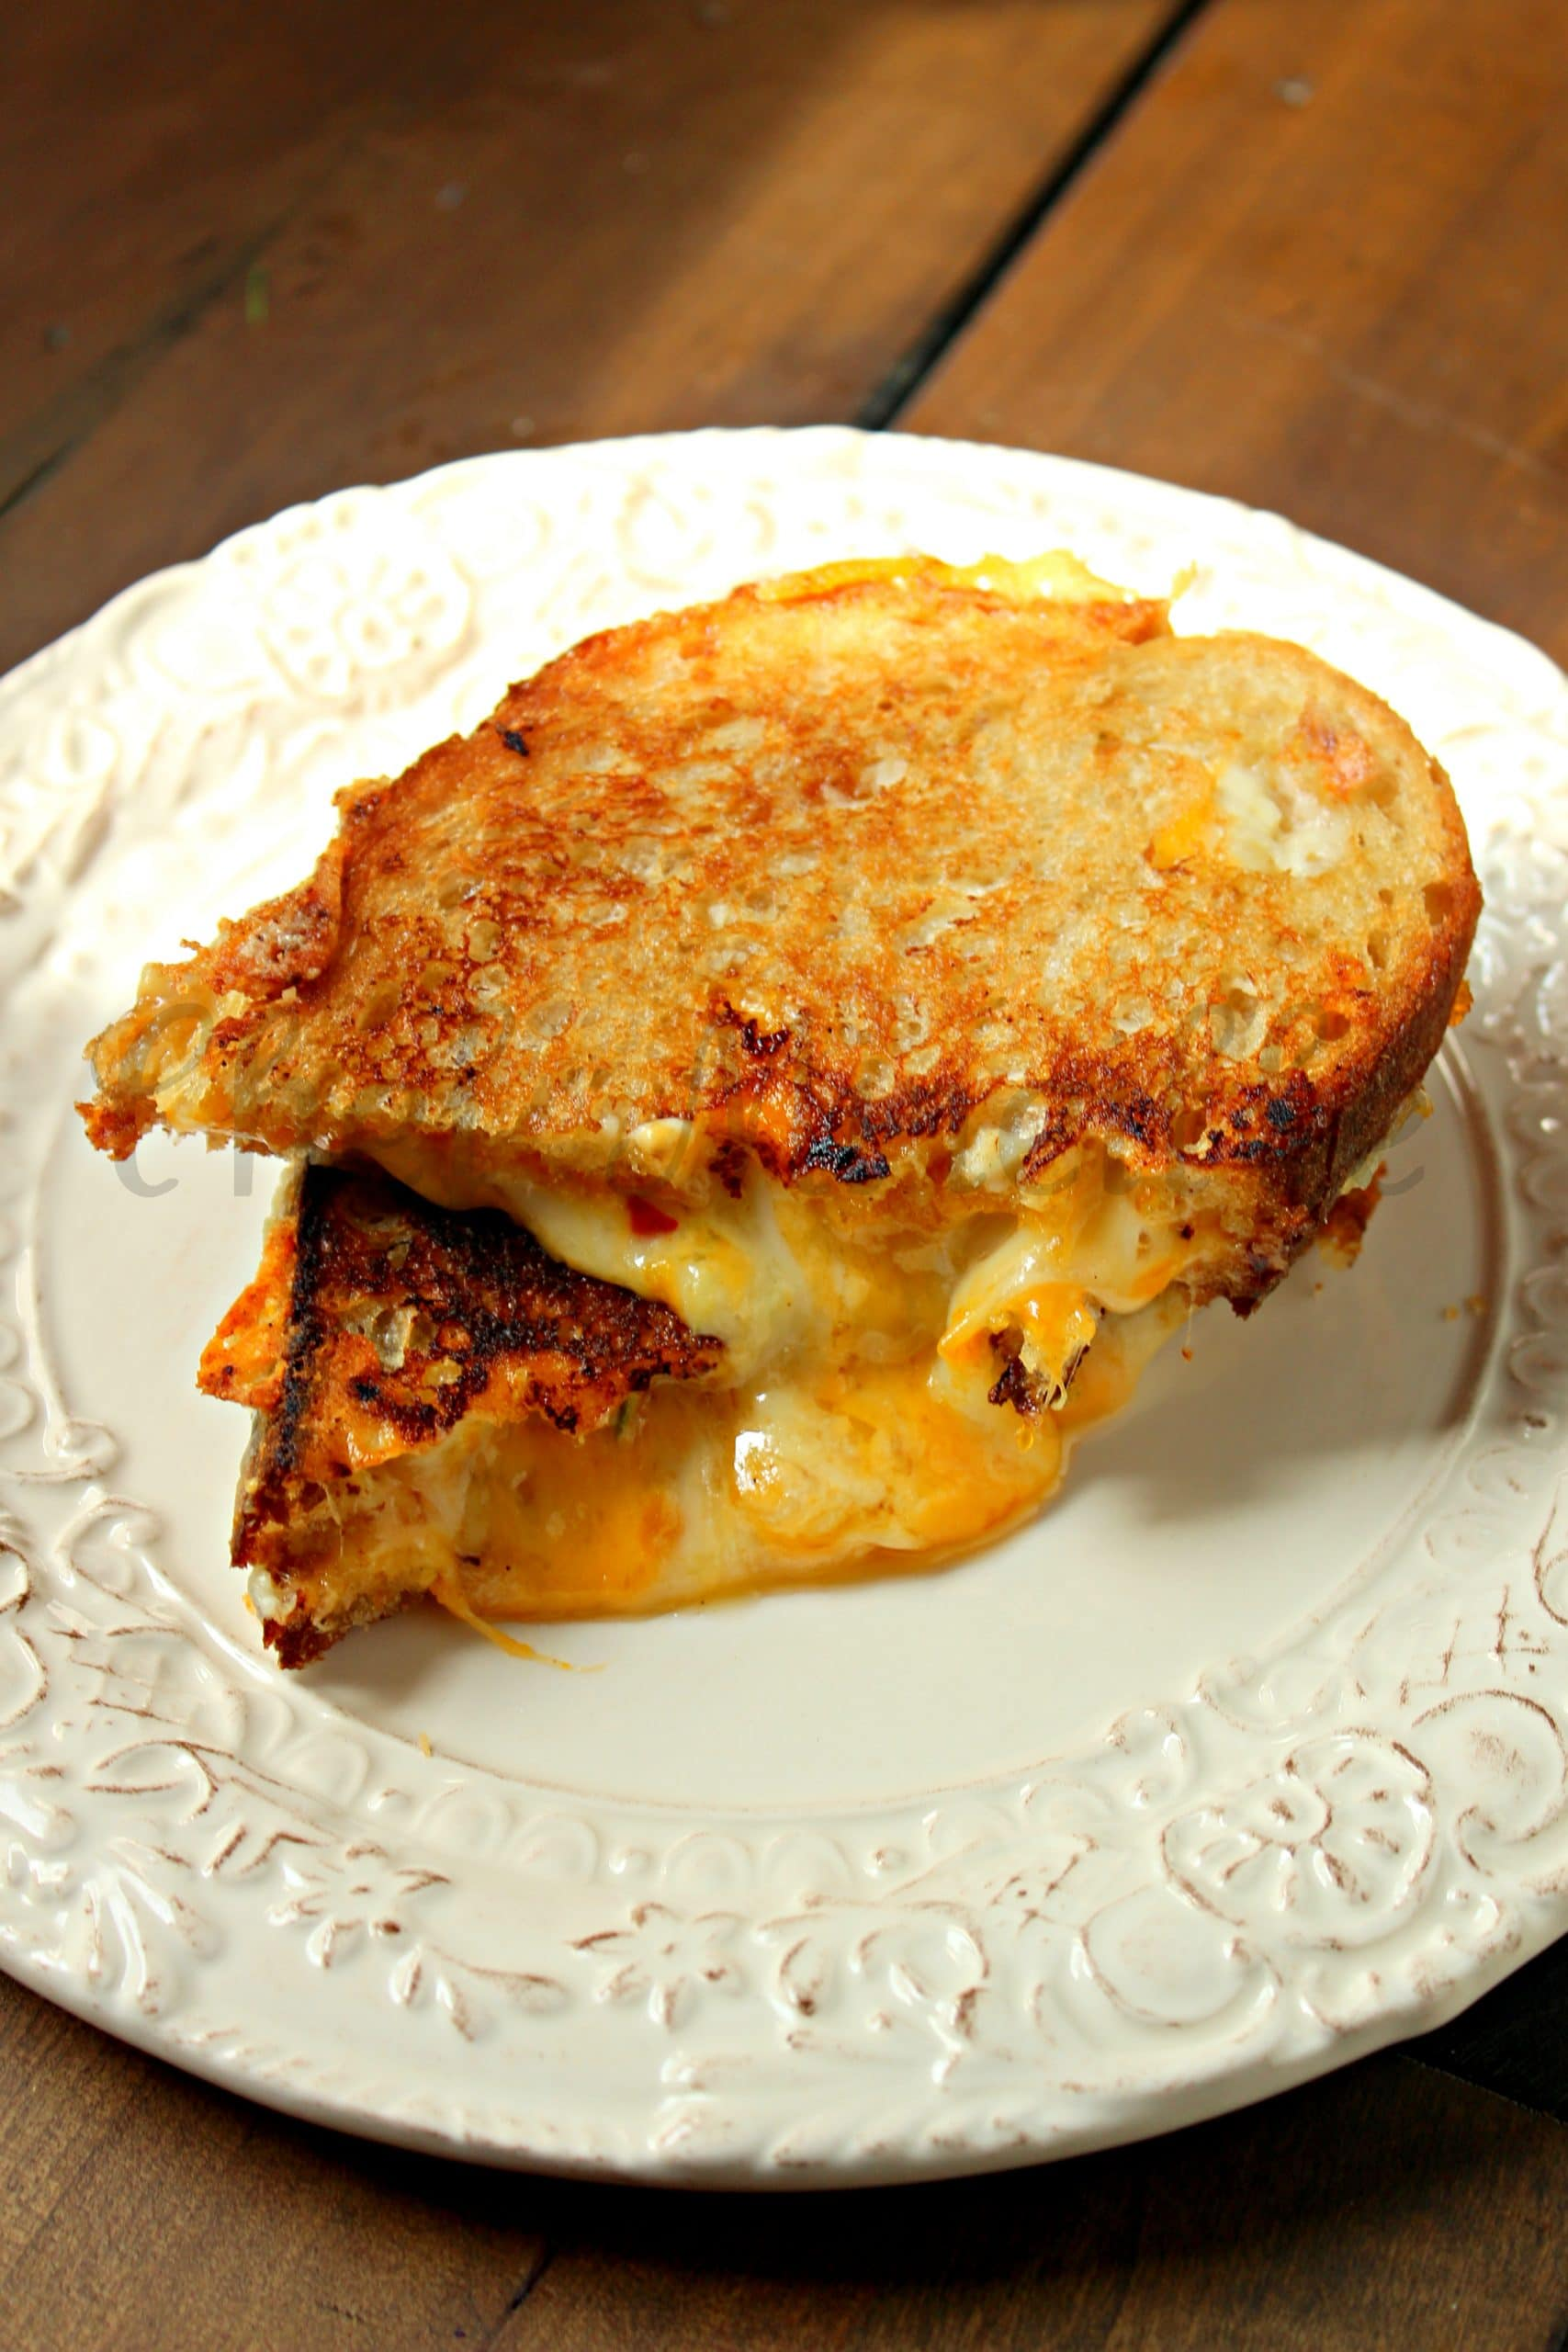 Gourmet Grilled Cheese Sandwich with 4 cheeses.